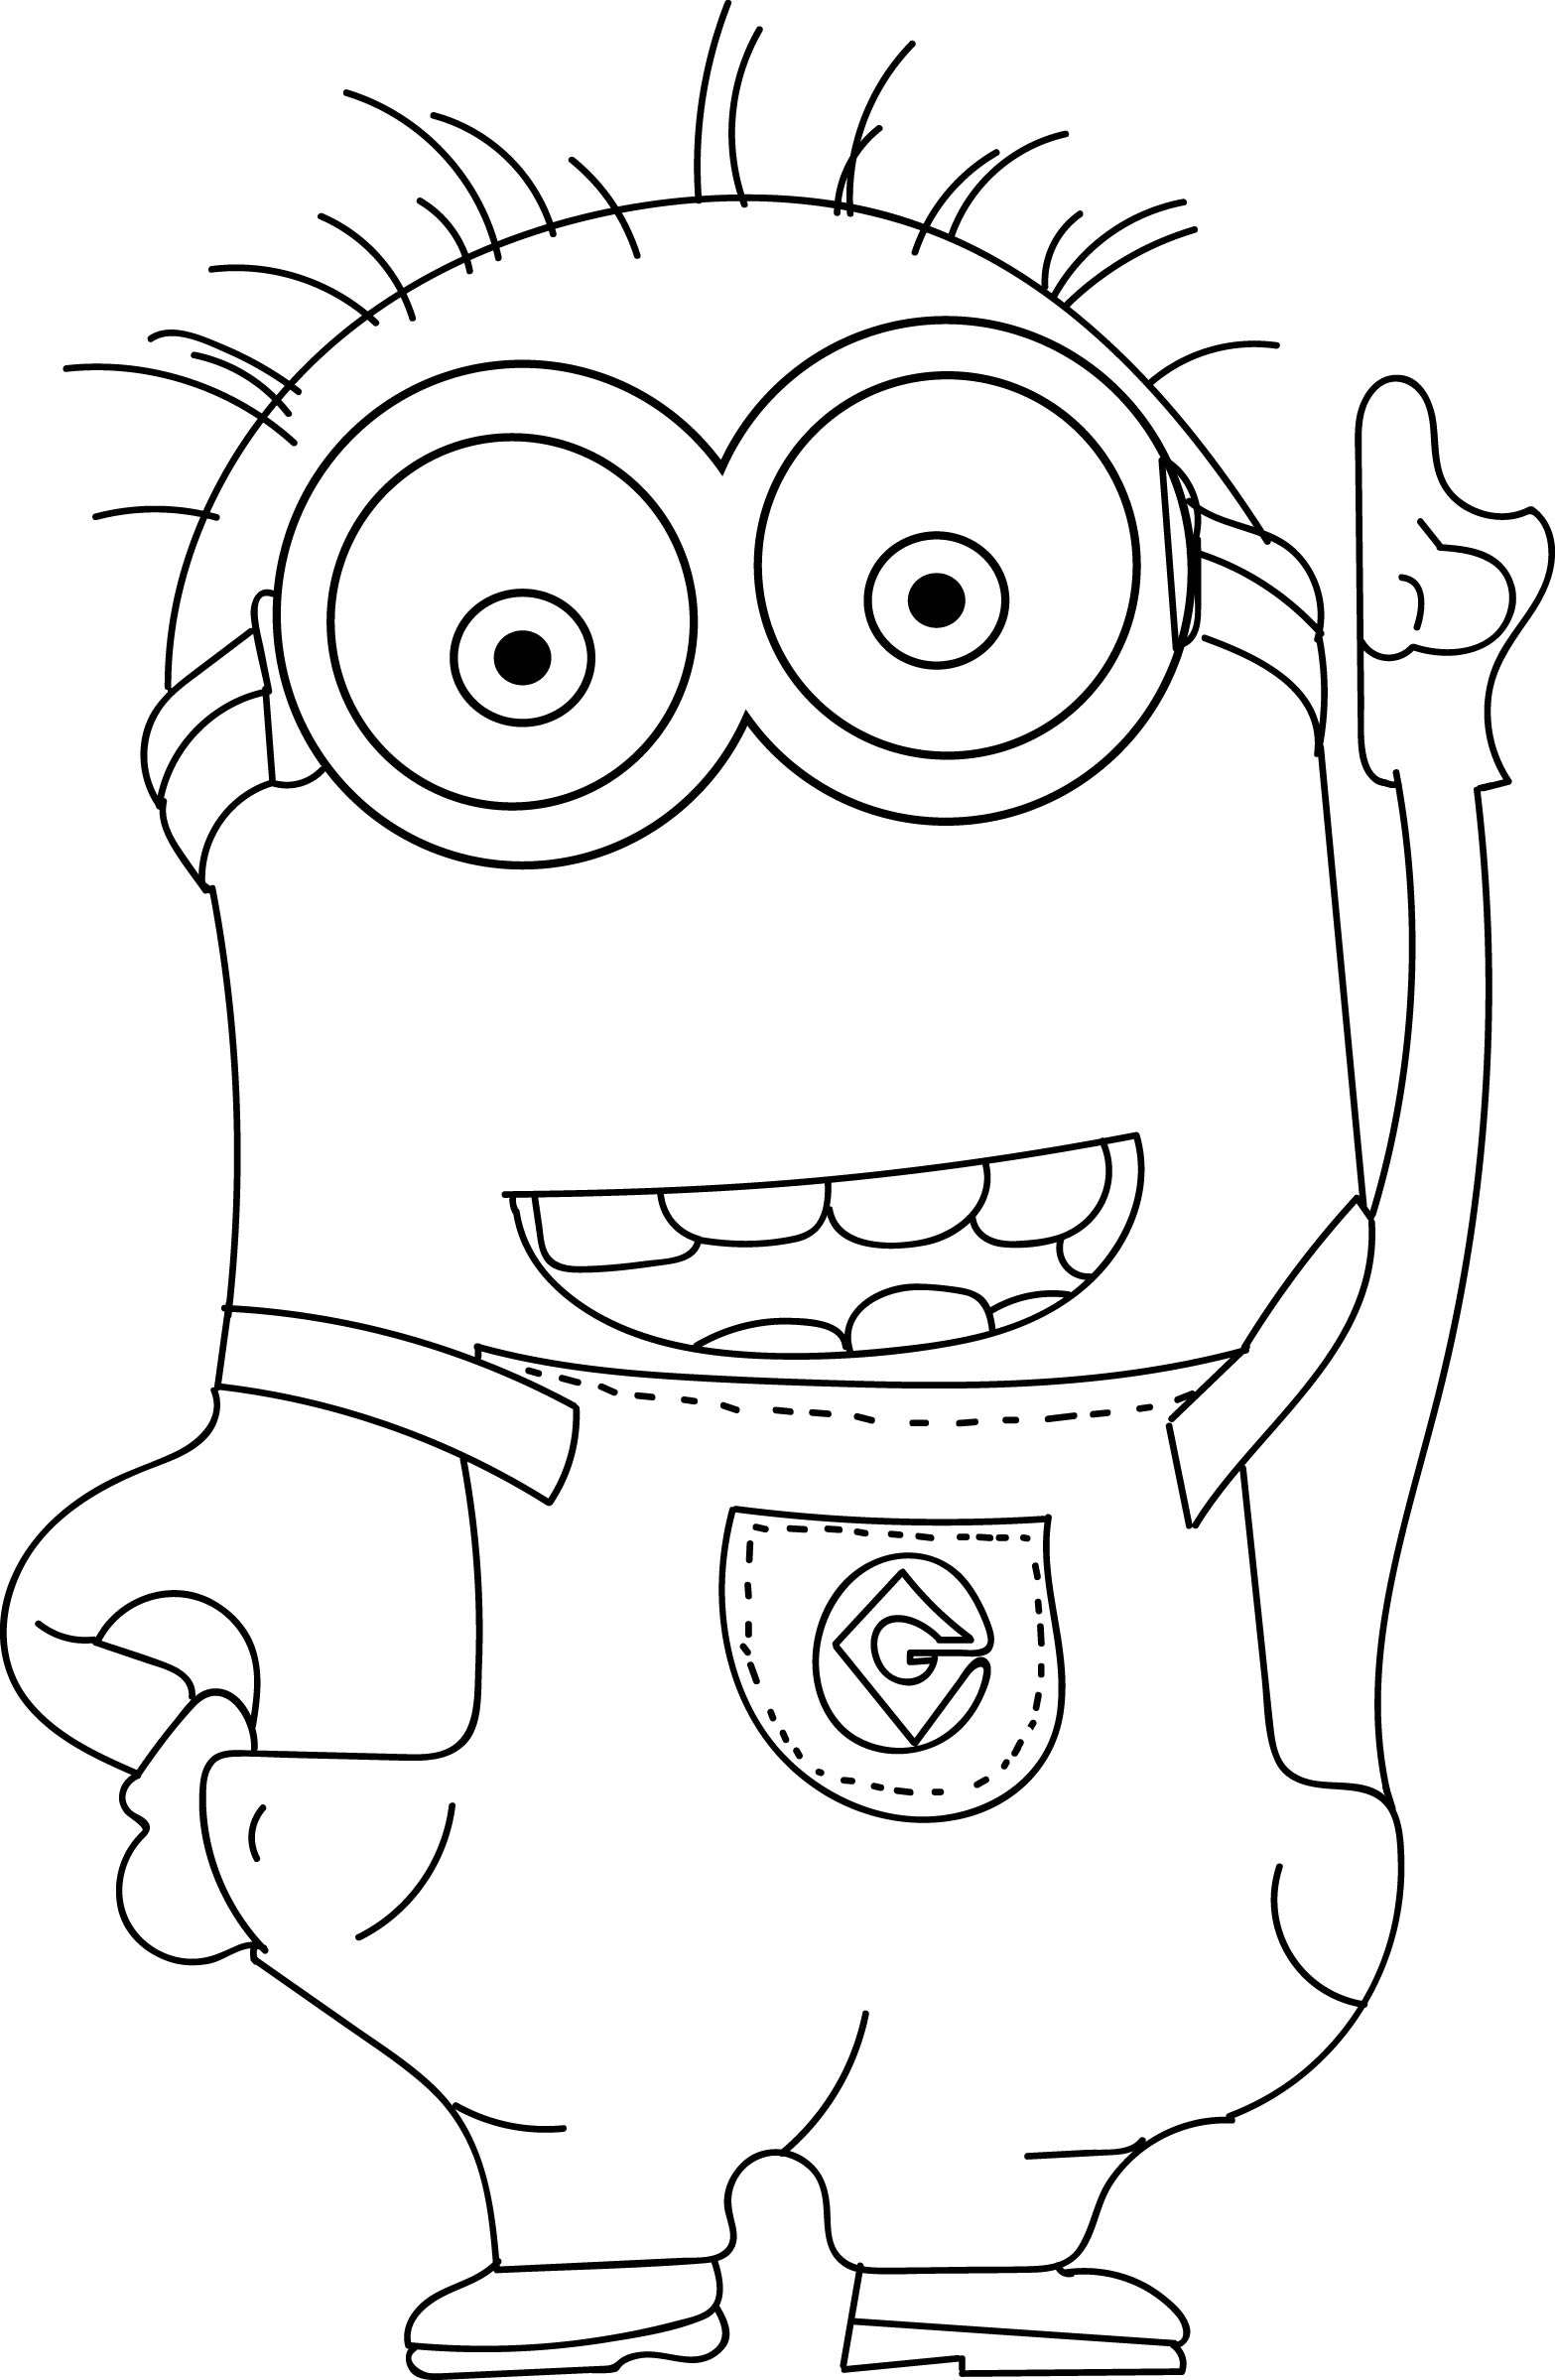 despicable me minions coloring pages despicable me agnes coloring pages getcoloringpagescom despicable coloring minions pages me